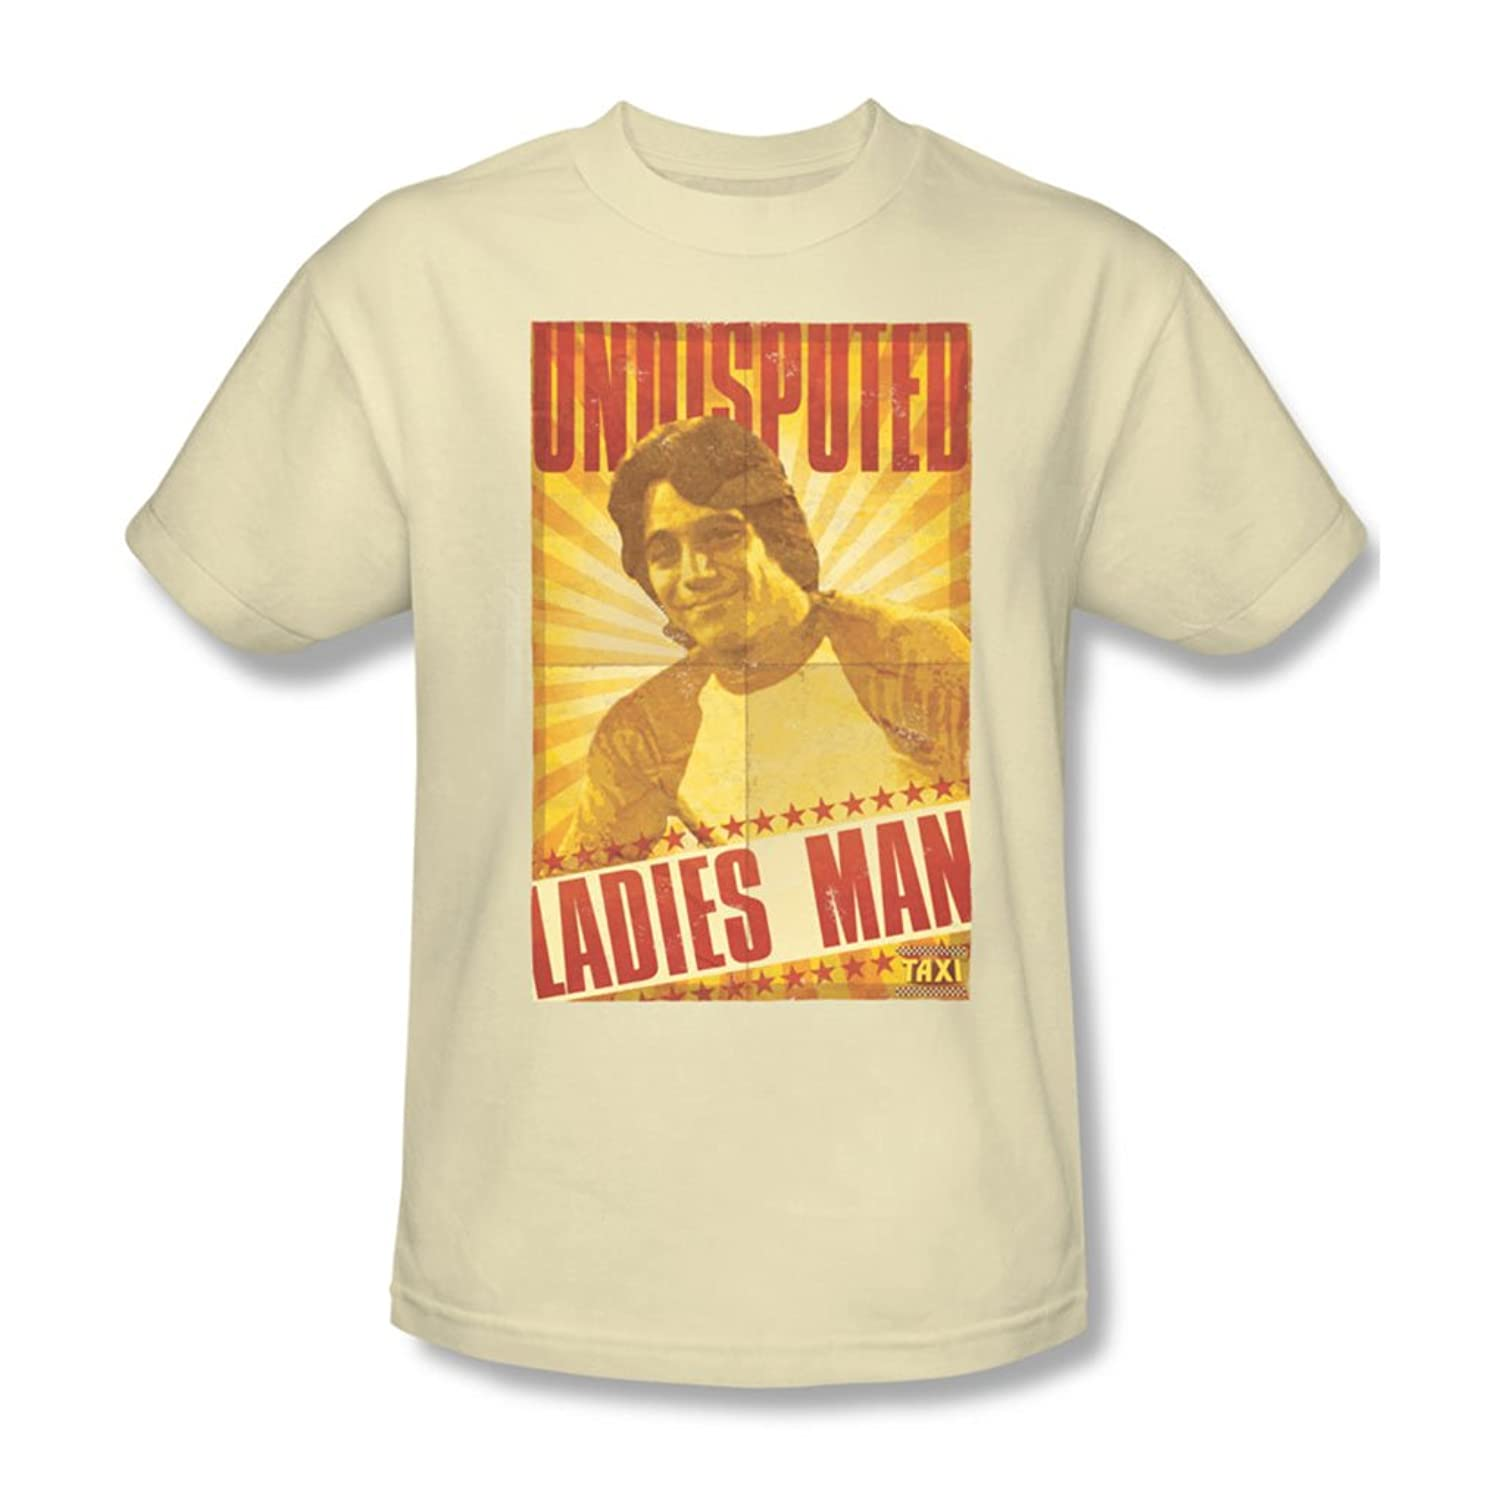 Taxi - Mens Ladies Man T-Shirt In Cream